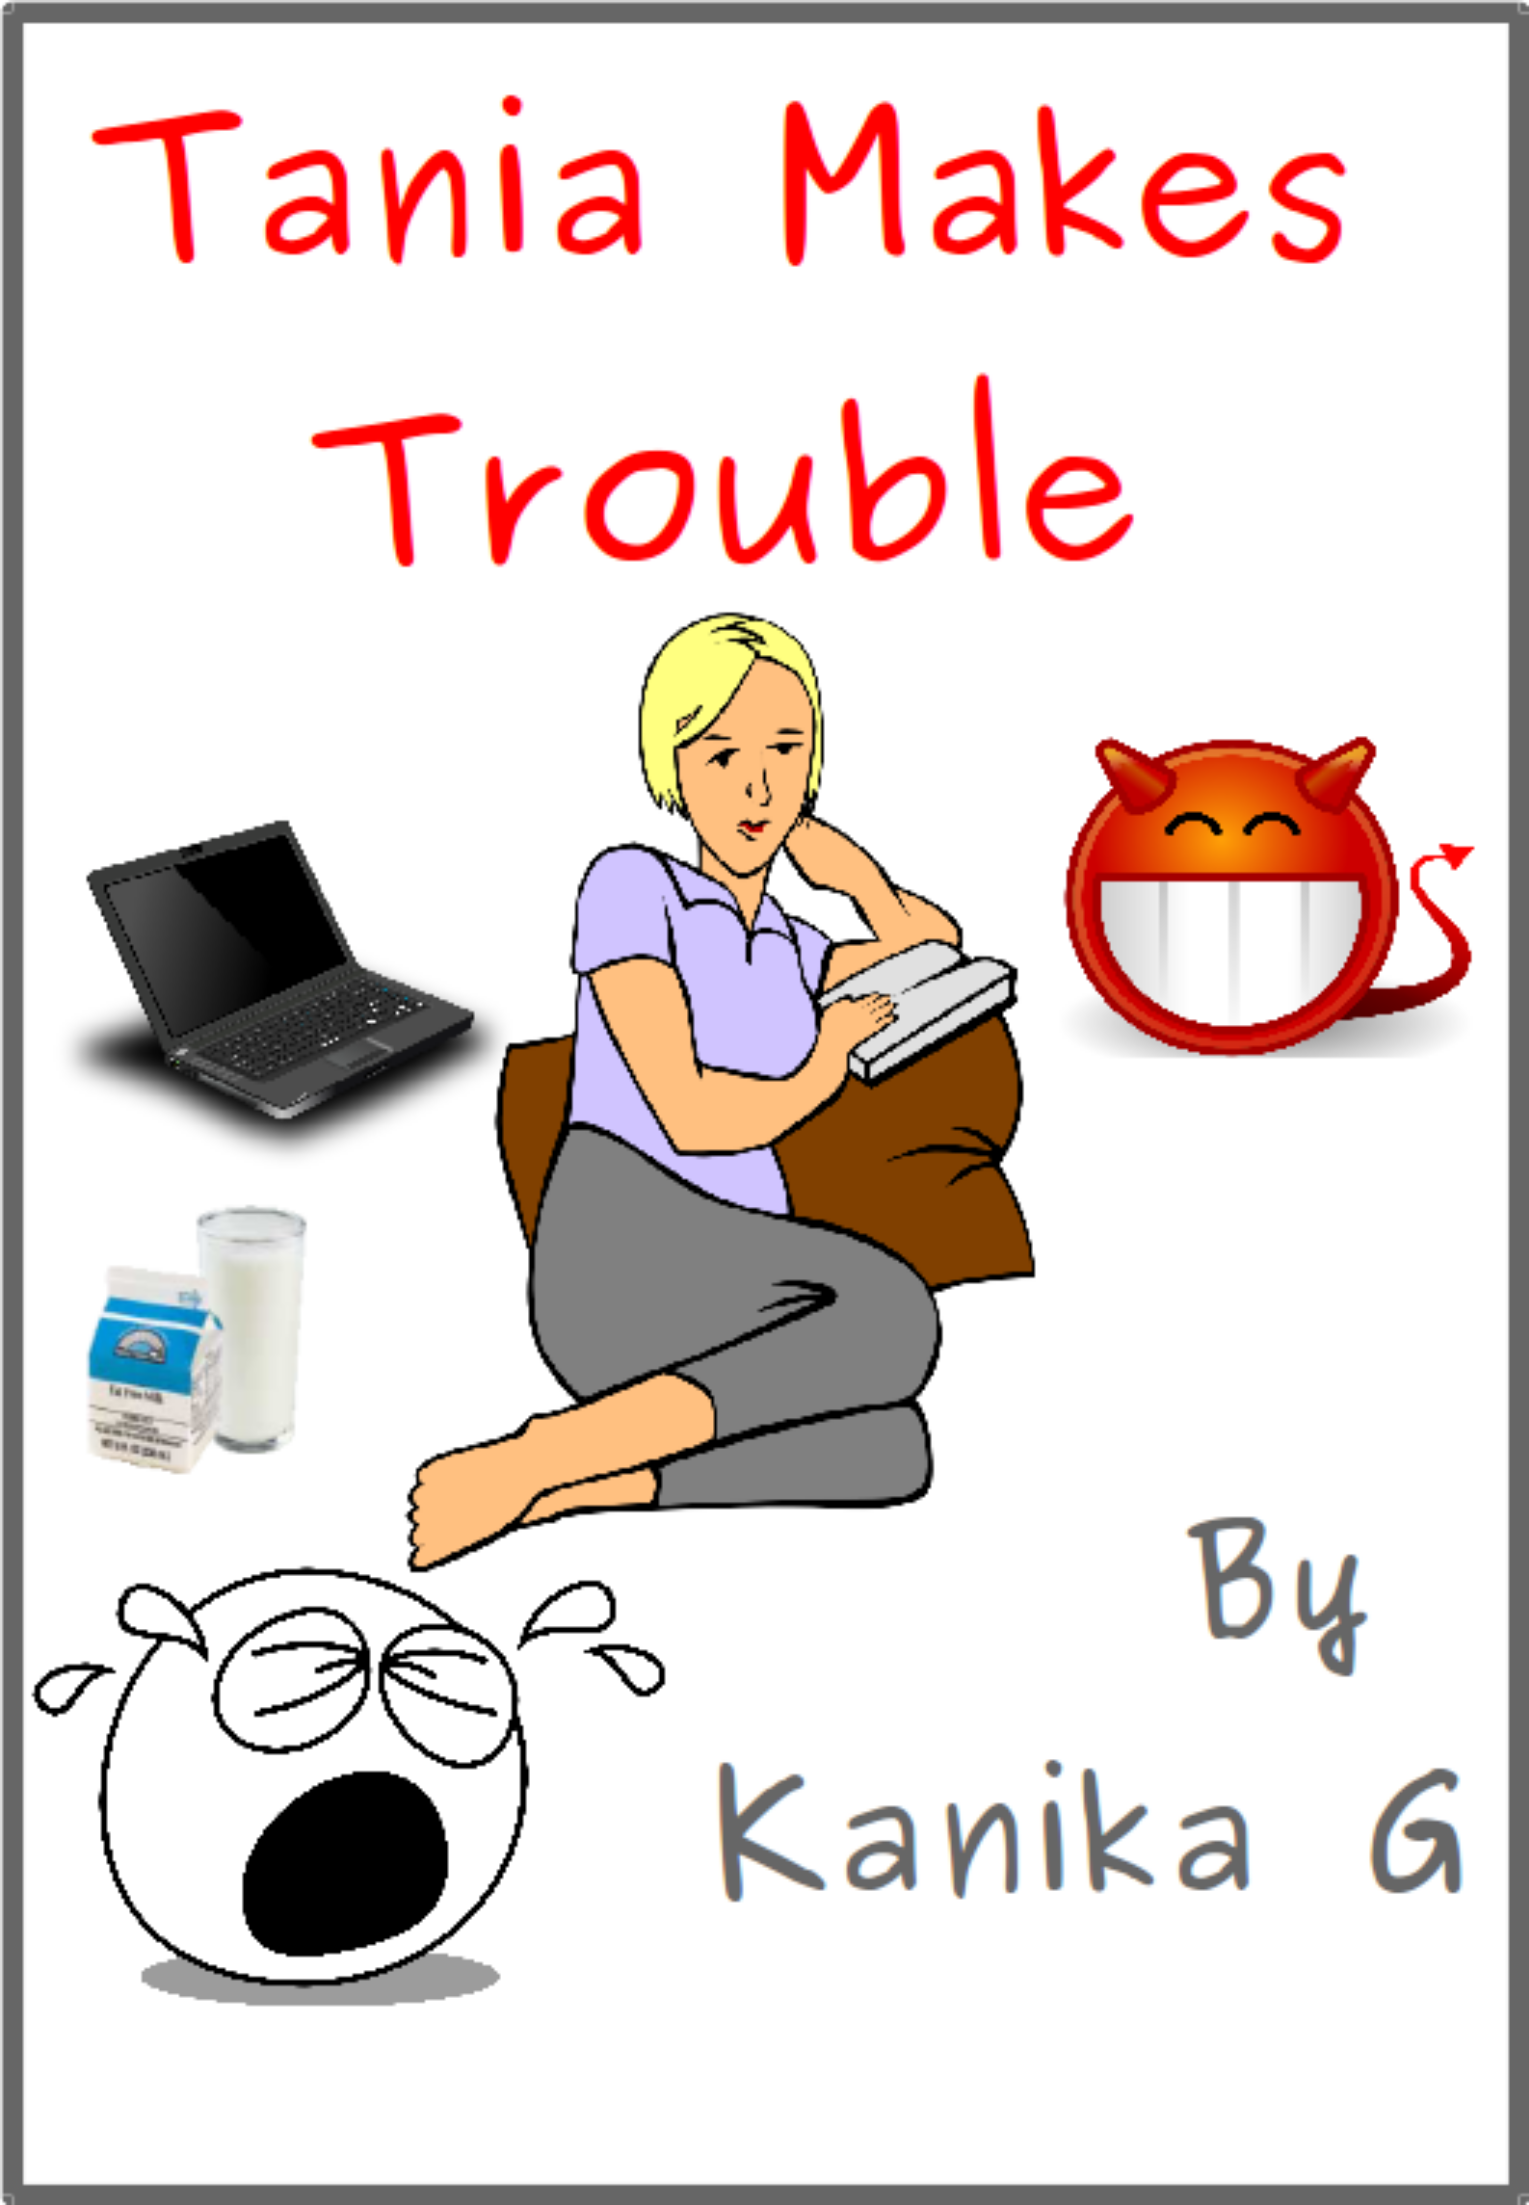 Tania Makes Trouble by G, Kanika